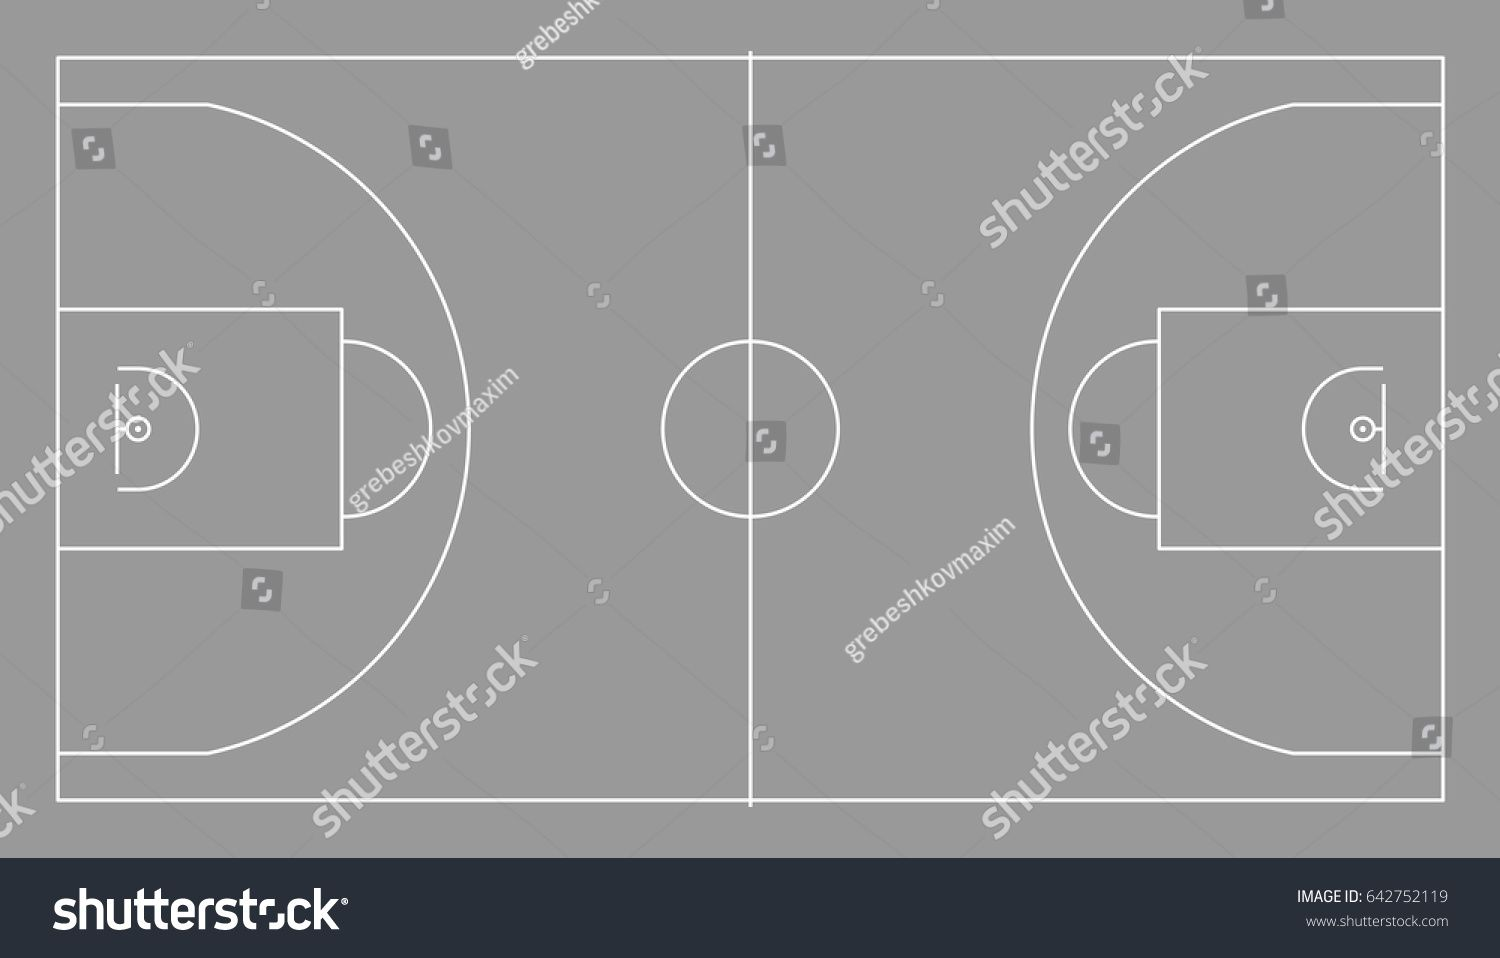 Basketball Court Vector Illustration With Lines Ad Spon Court Basketball Vector Lines Vector Illustration Vector Illustration